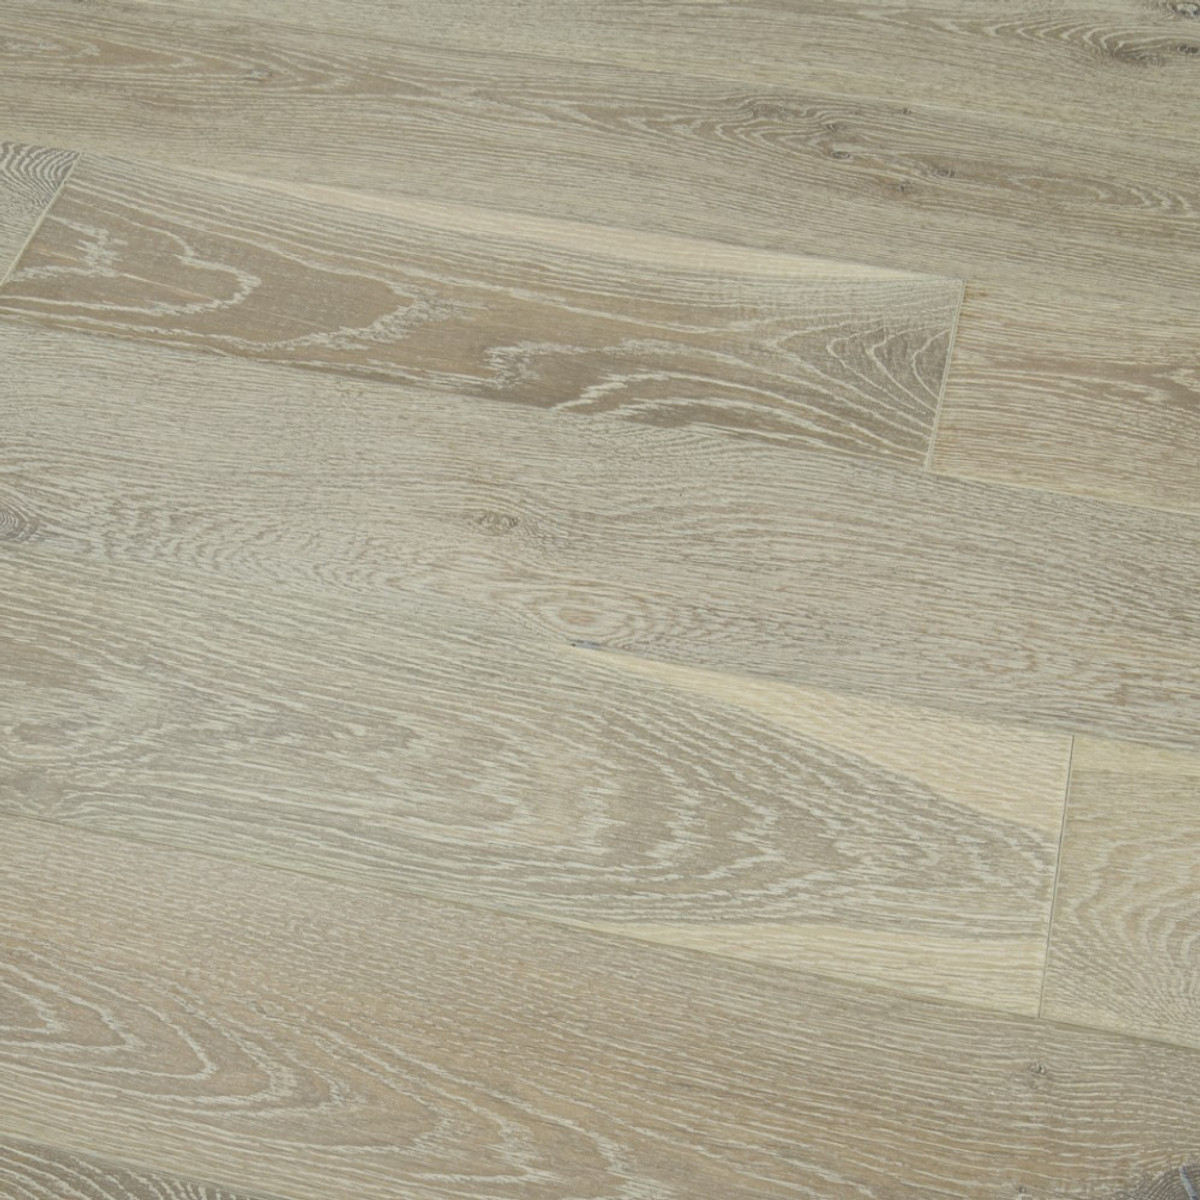 Tuscany Tudor Oak Smoked Brushed and White Oiled Engineered Wood Flooring order instore or online today @ www.tuscanytiles.co.uk